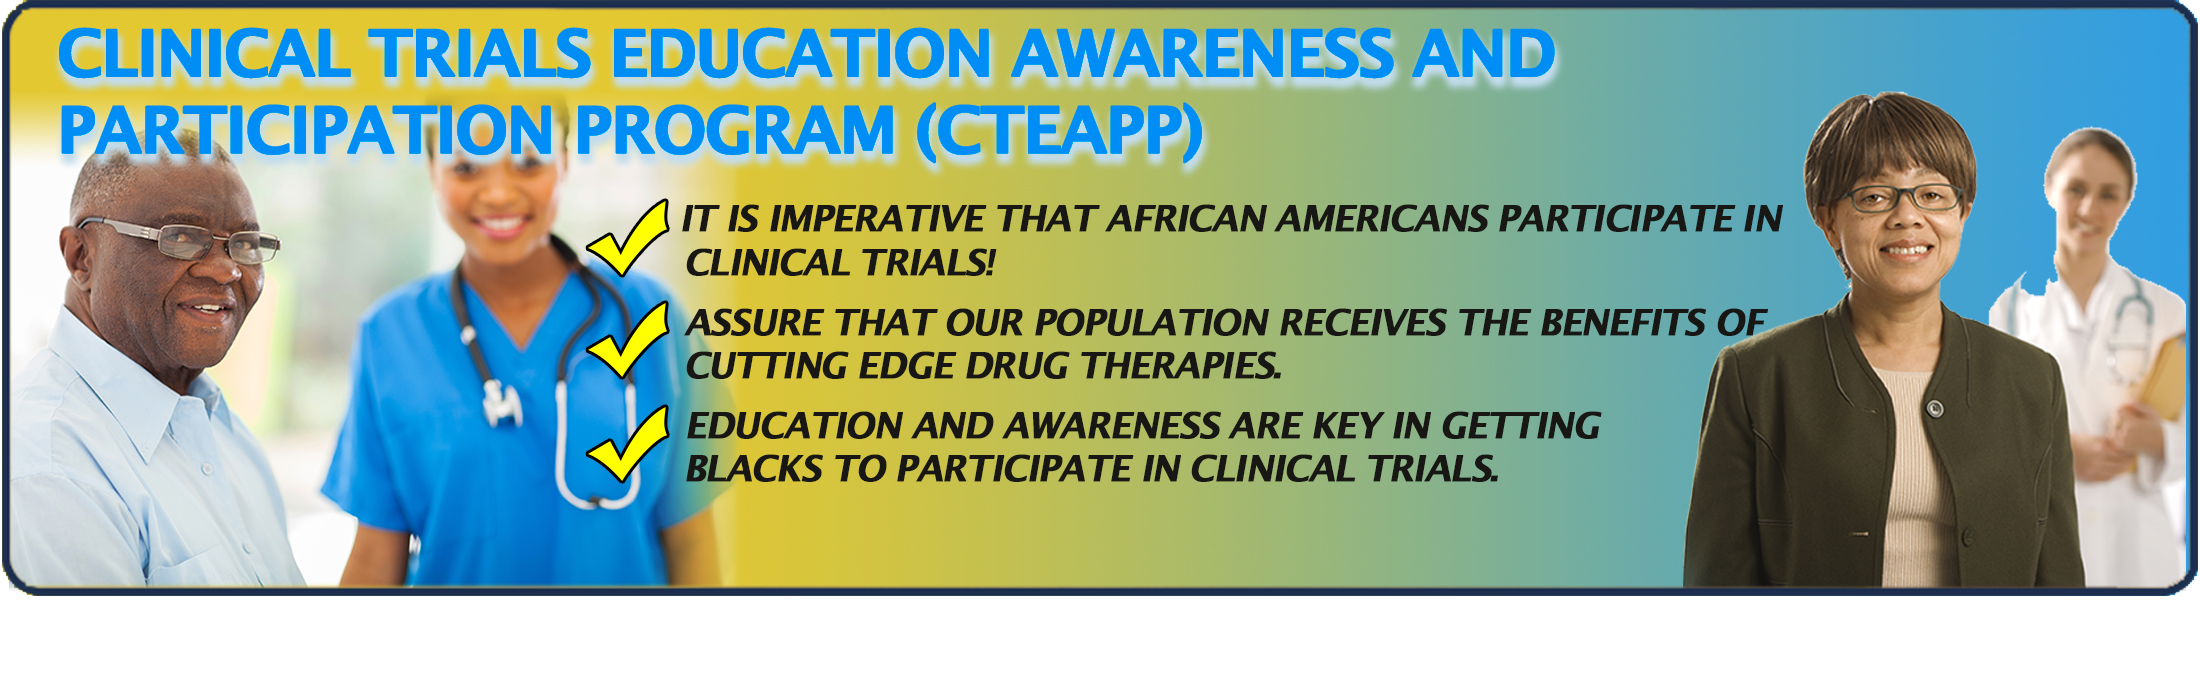 The NBCI Clinical Trials Education Awareness Participation Program (CTEAPP) is another 